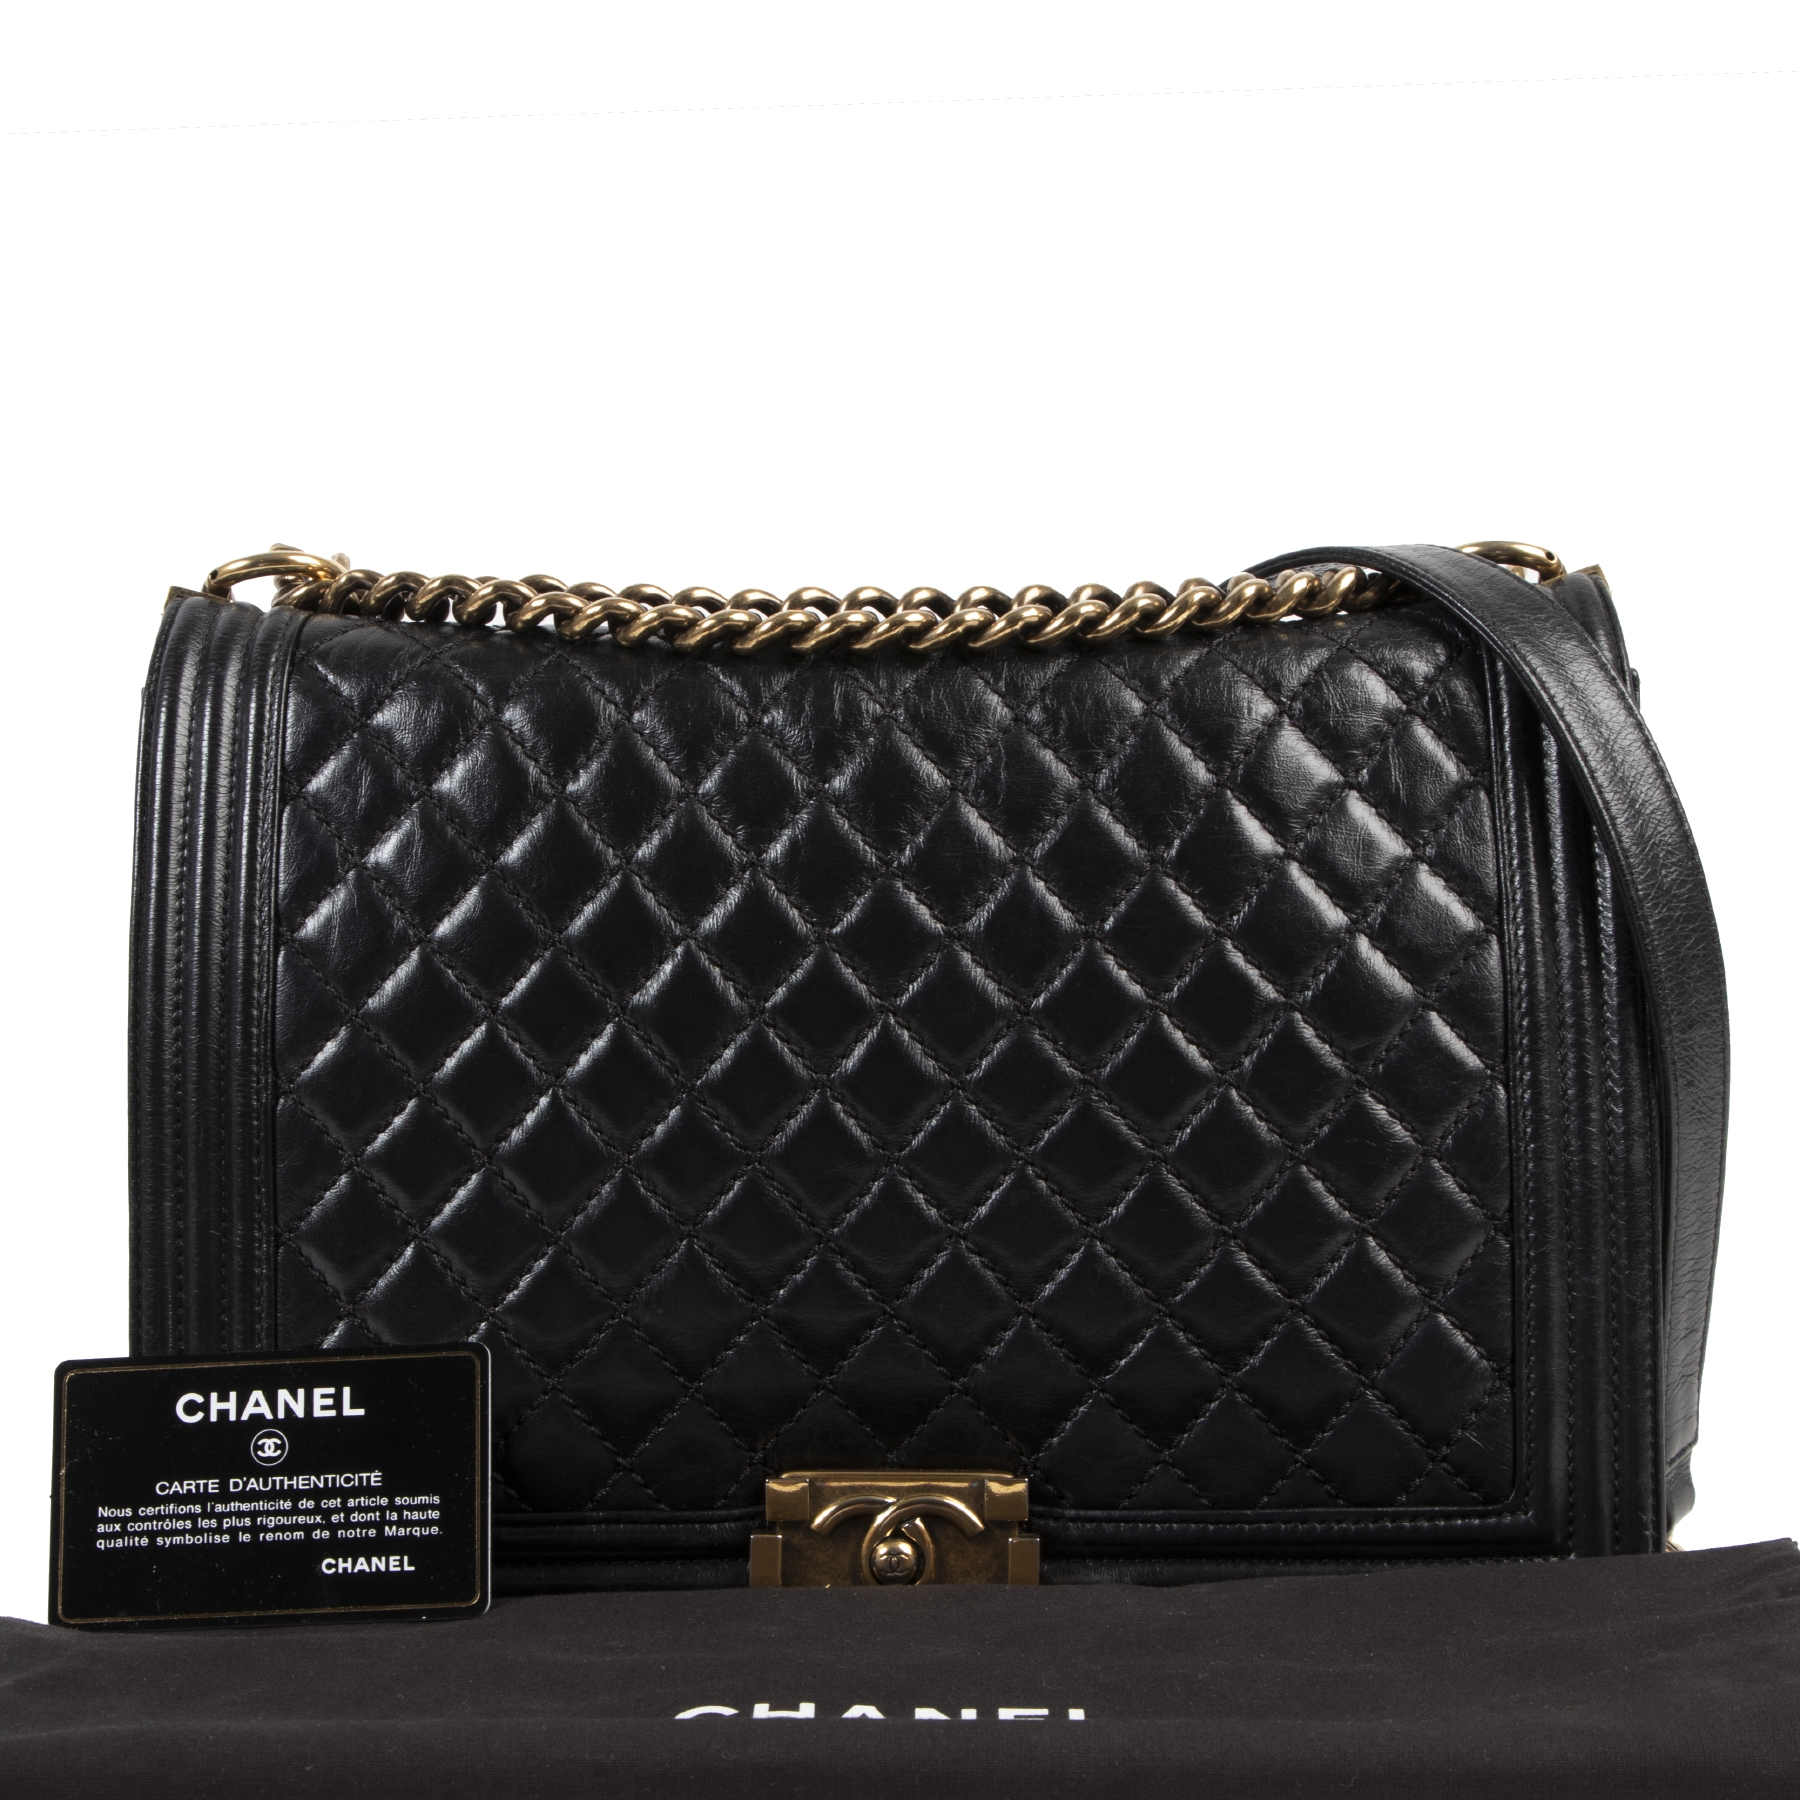 acheter en ligne seconde main Chanel Black Quilted Large Boy Bag